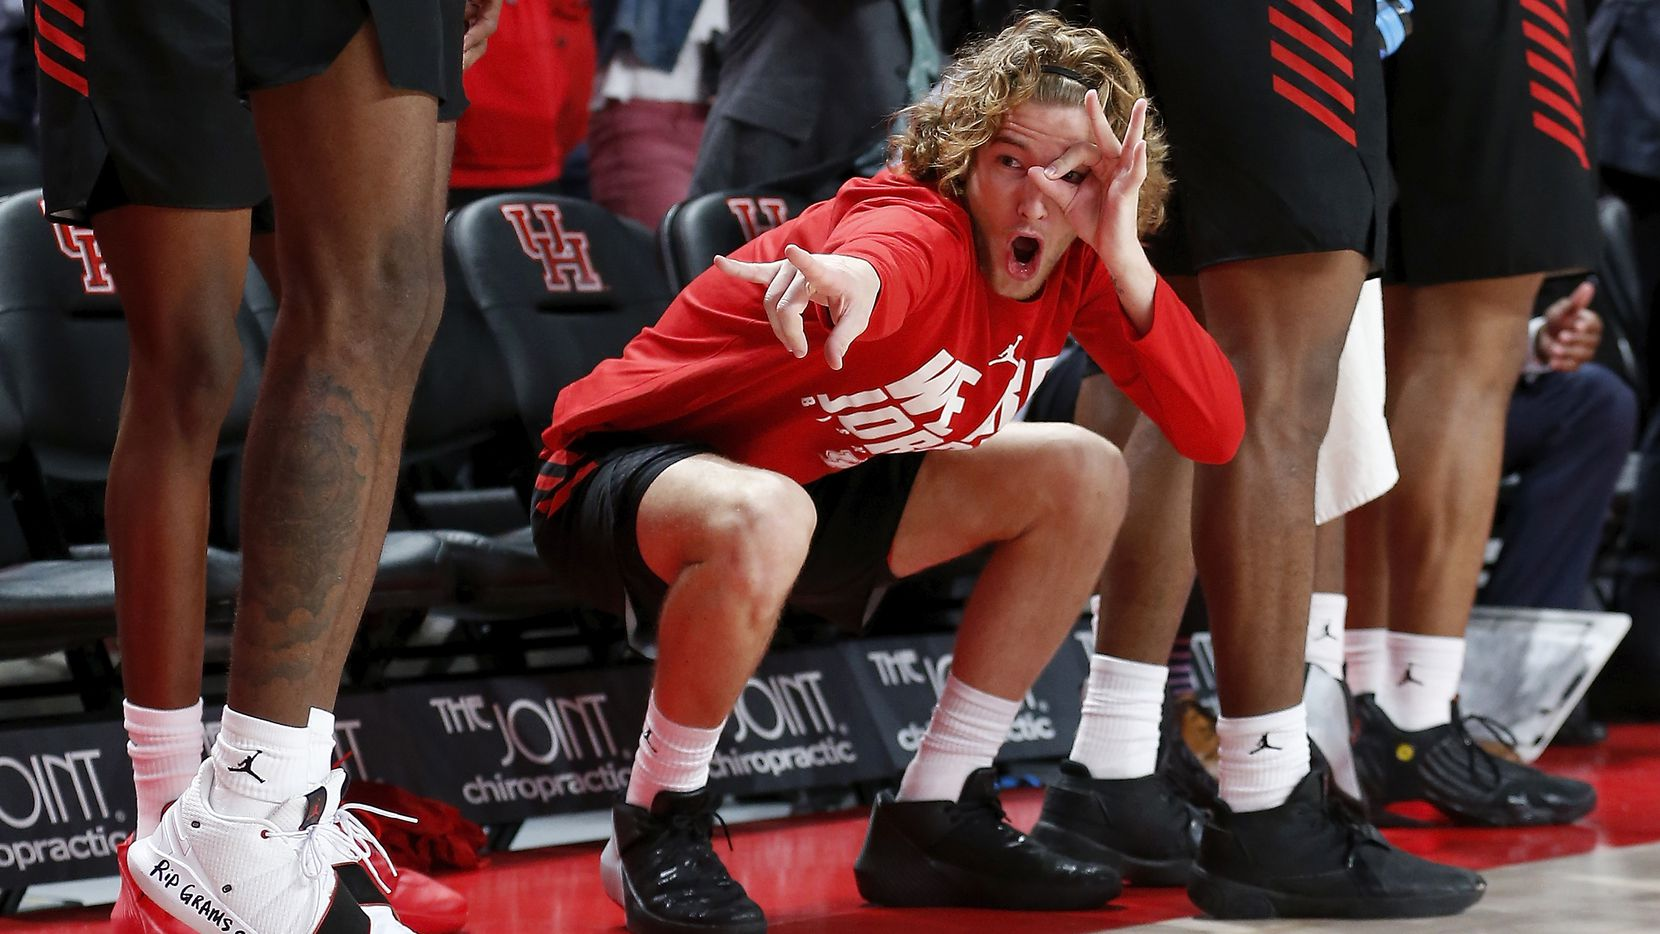 Houston Cougars guard Landon Goesling (2) celebrates on the bench after a three point shot during the second half of the NCAA basketball game between the Houston Cougars and the LSU Tigers at the Fertitta Center in Houston, TX on Wednesday, December 12, 2018.  Houston defeated LSU 82-76.